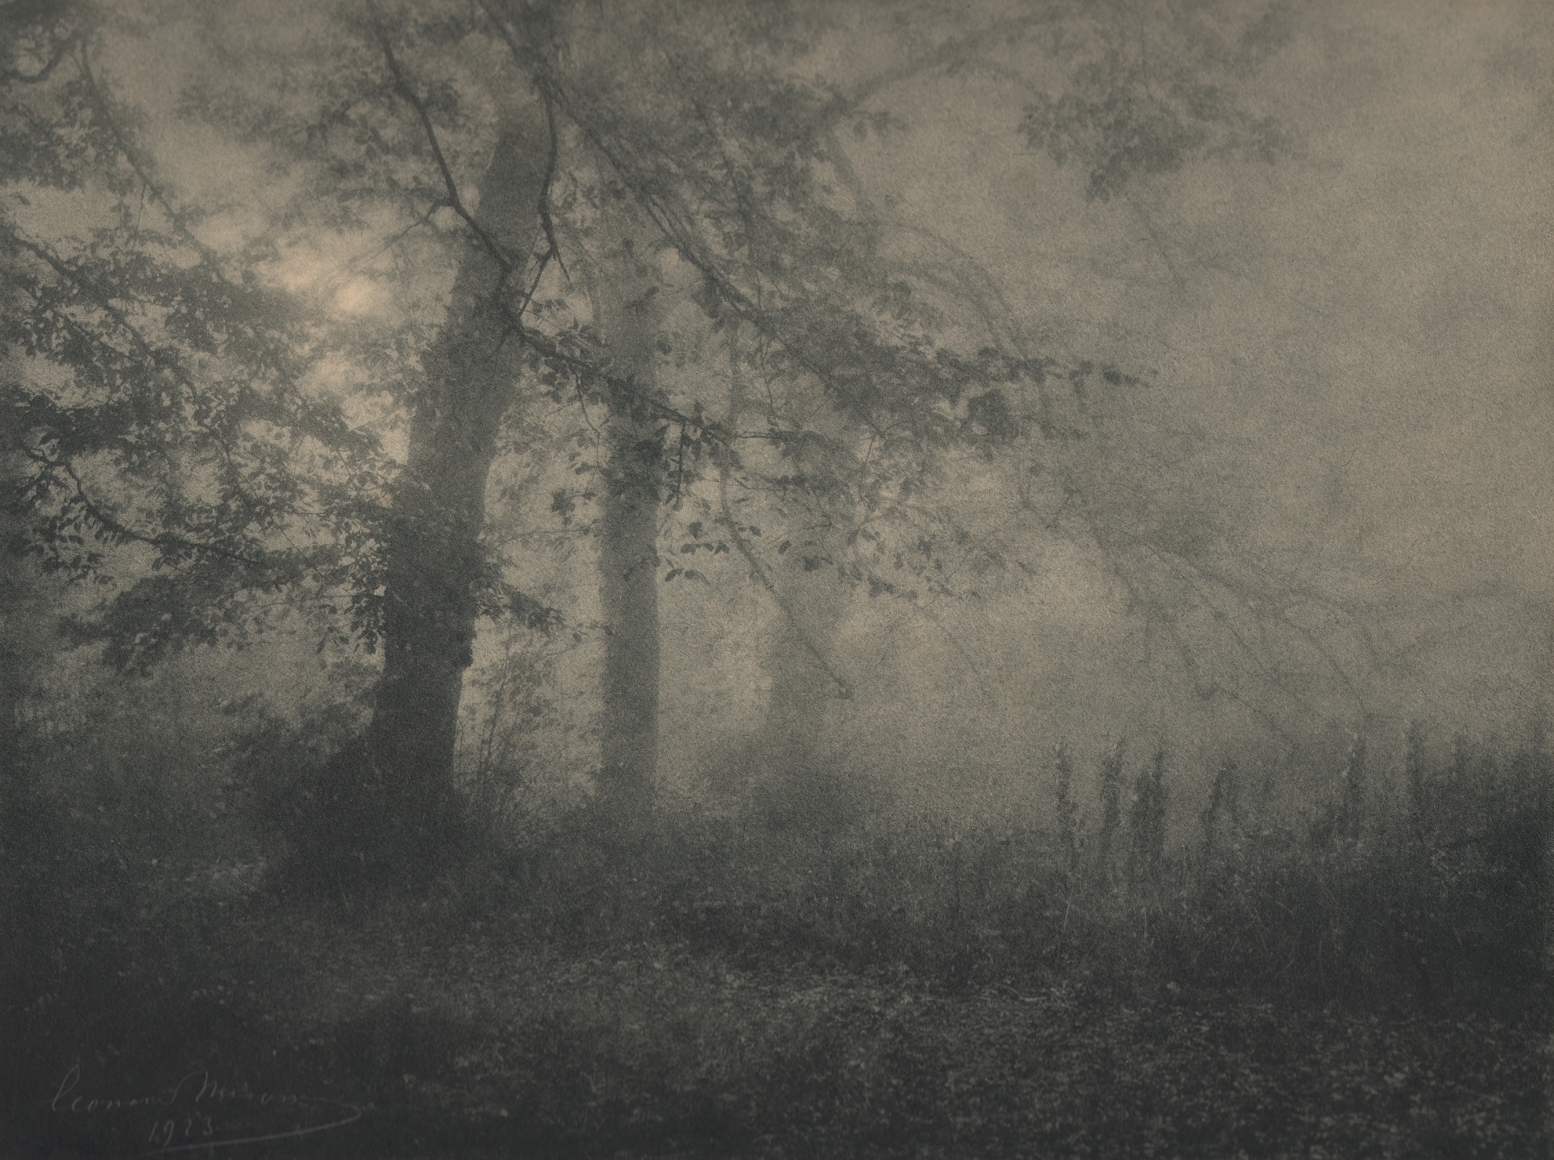 27. Léonard Misonne, Brume, 1923. Trees occupy the left of the frame, low brush on the right. Soft light coming from the left. Gray/green-toned print.